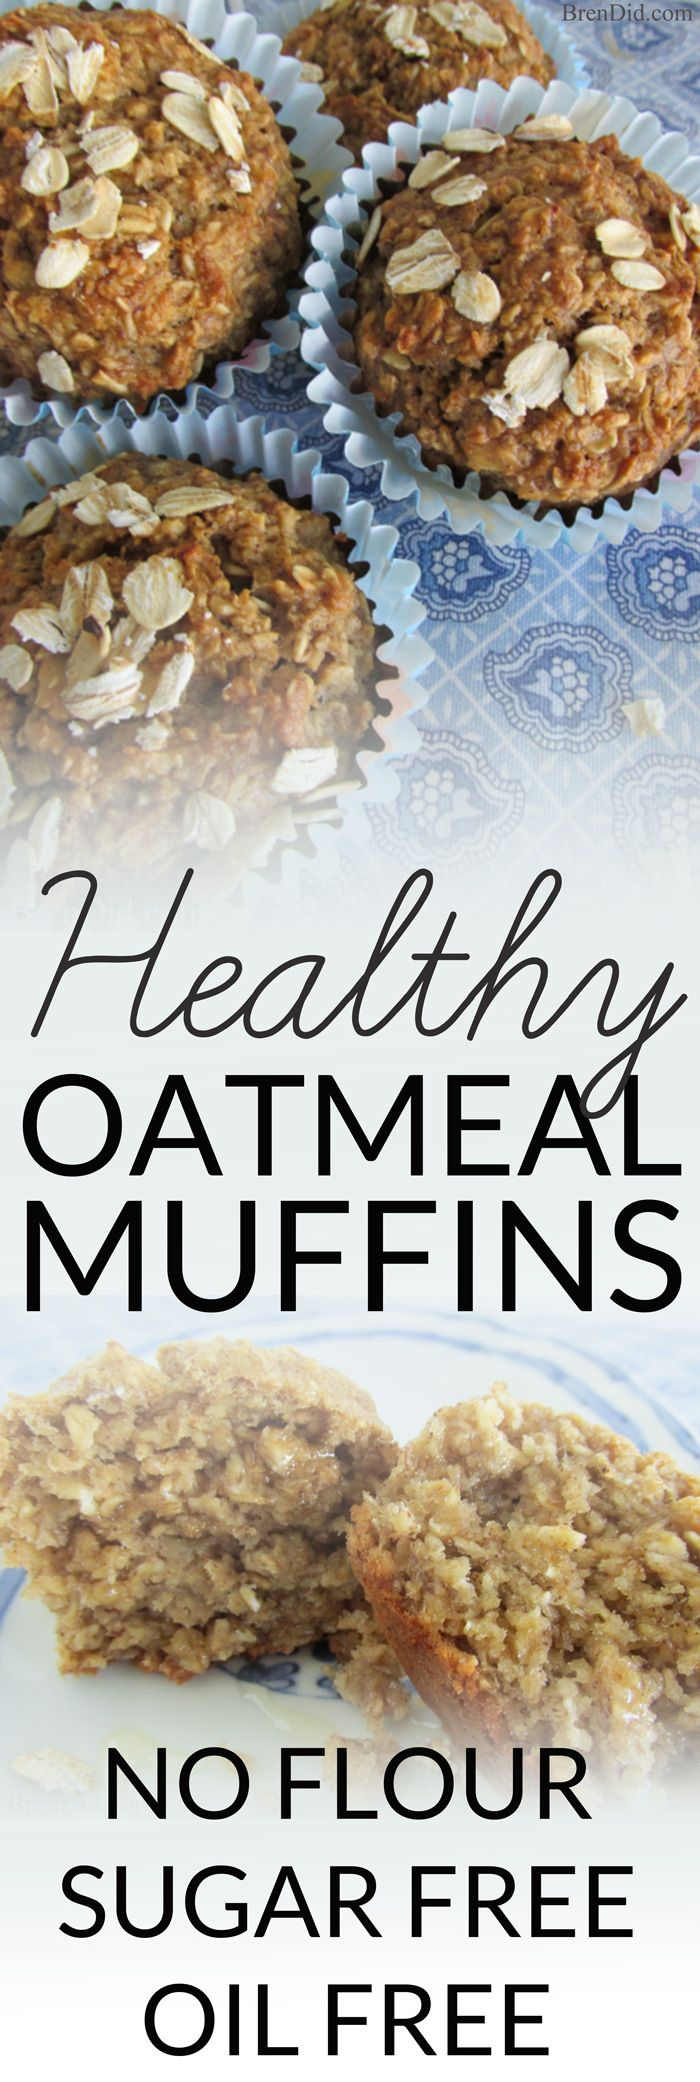 Healthy Oatmeal Muffins Recipe contains No Flour, No Sugar banana, blueberry lemon, pumpkin, carrot, applesauce, raisin cinnamon vanilla